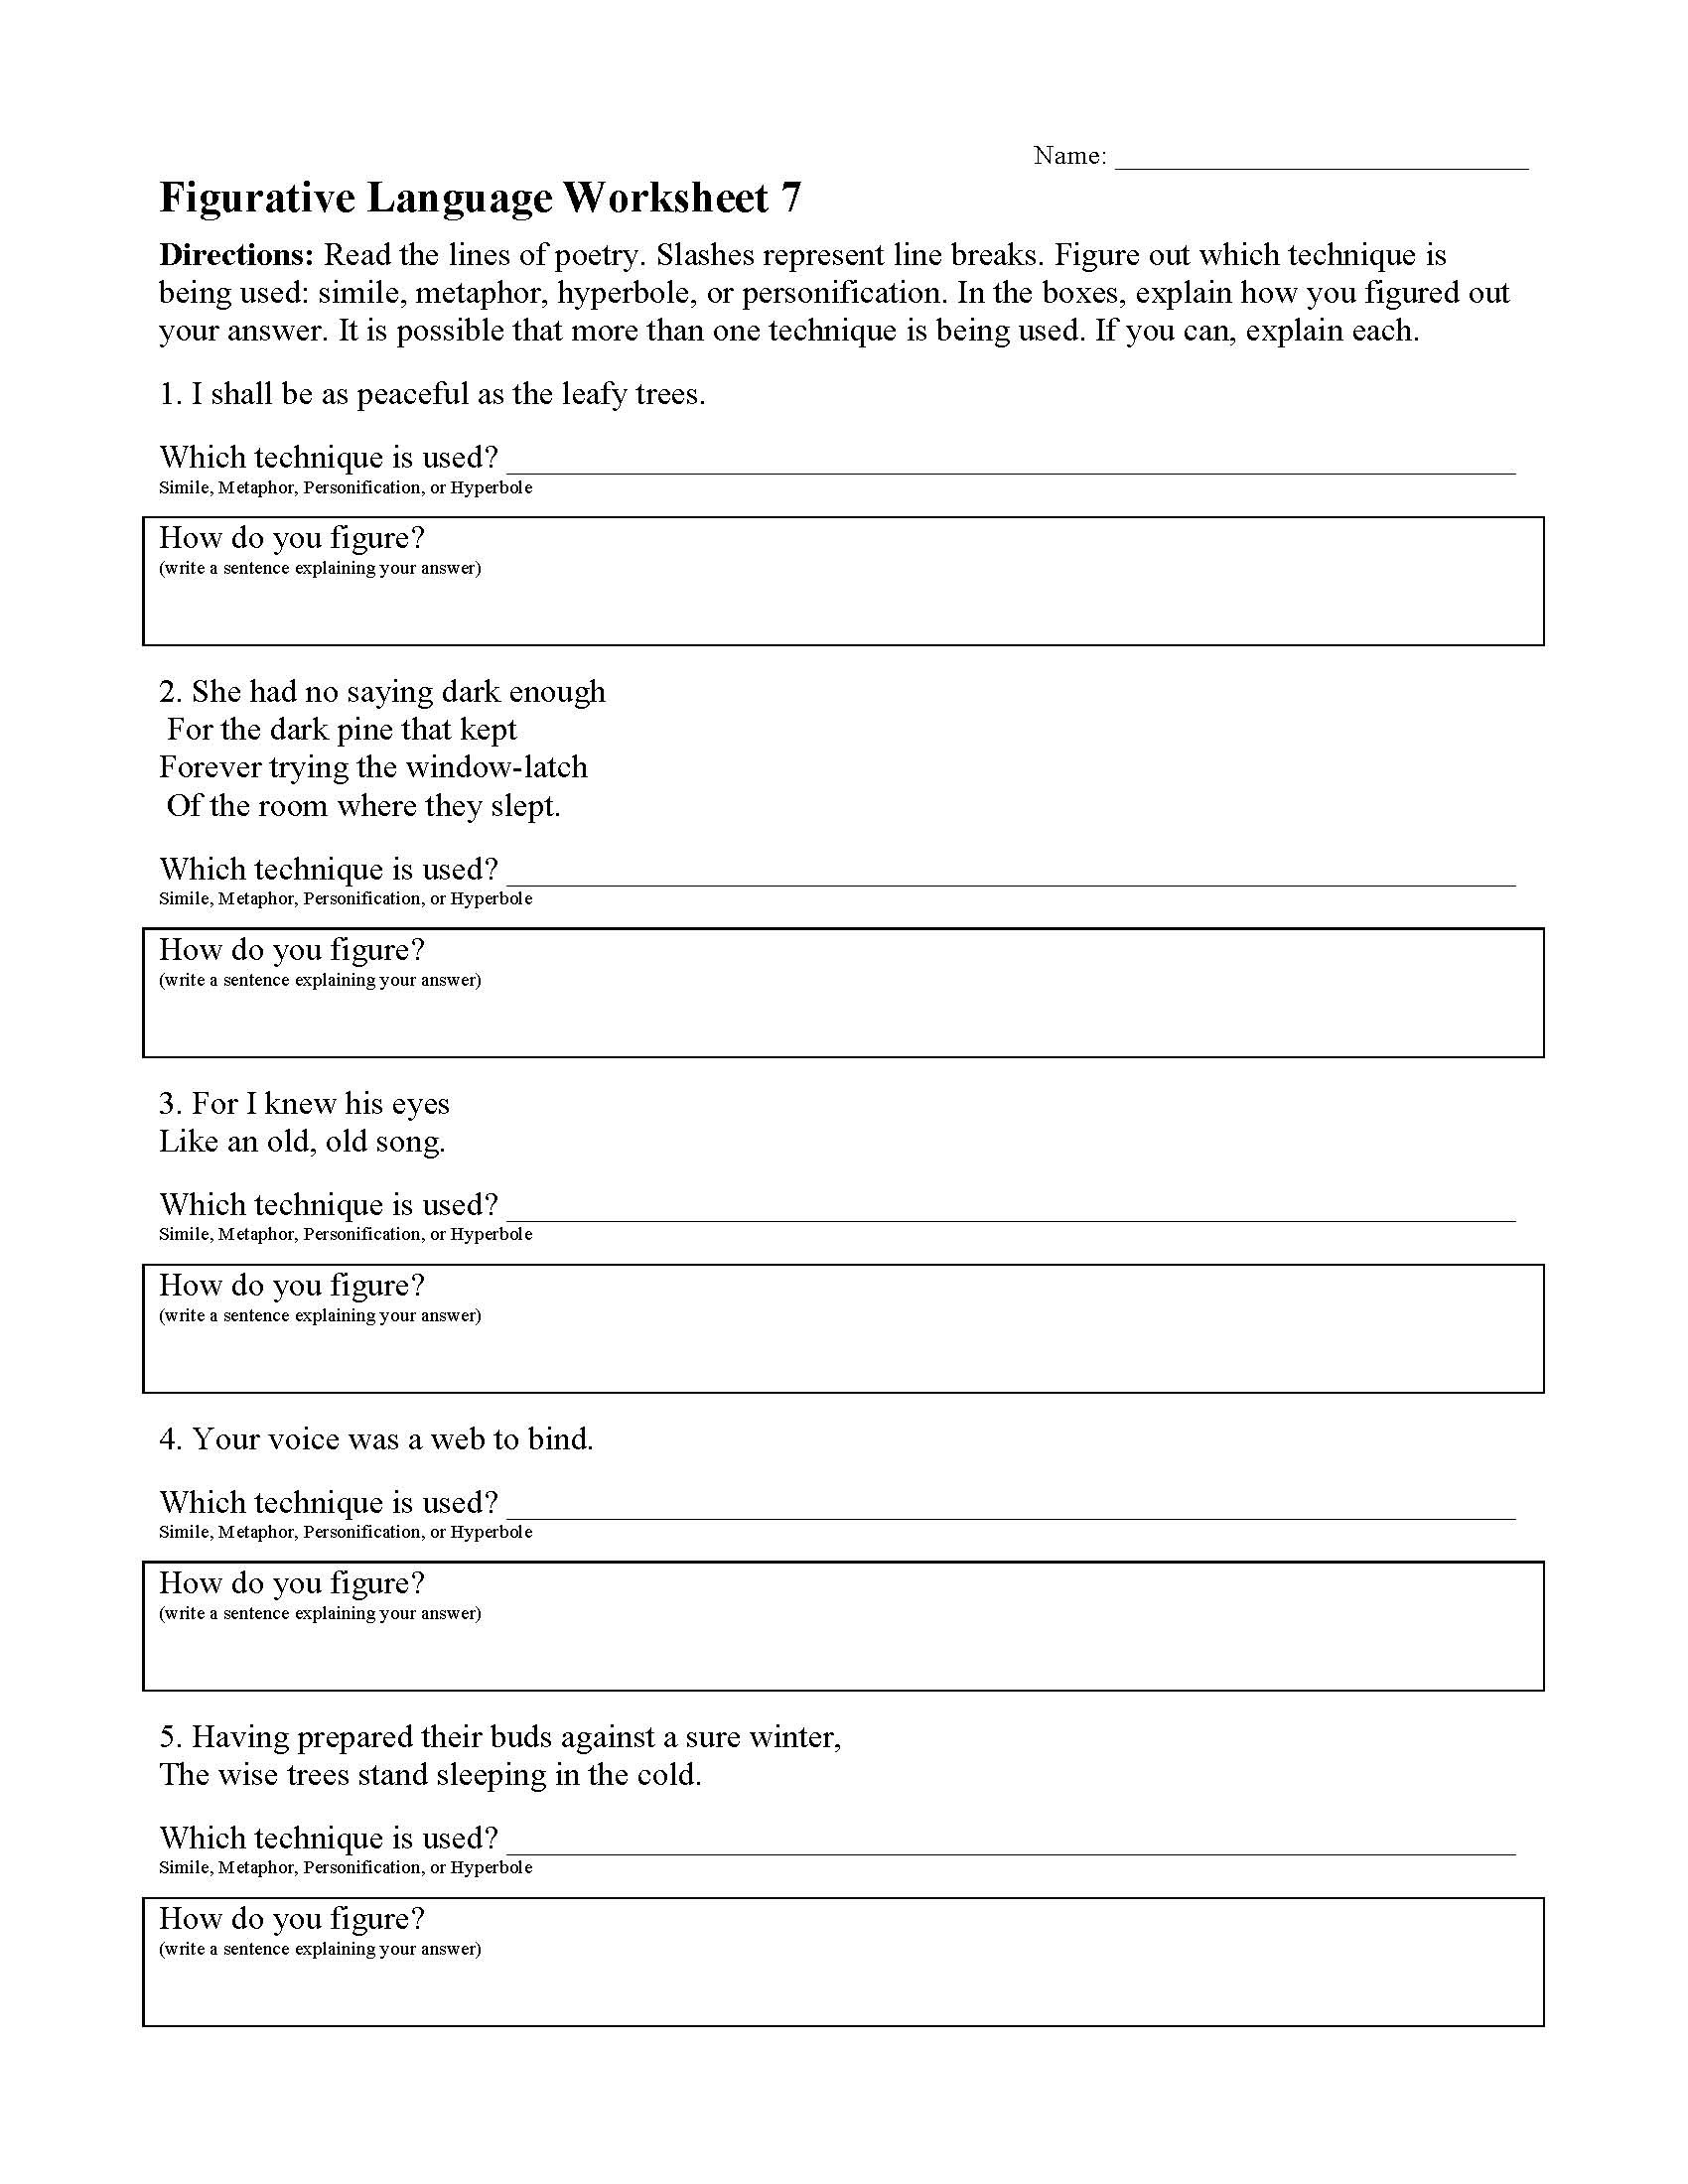 Figurative Language Worksheets High School Simile Worksheets For 6th Grade Educational Template Design Reading worksheets and online activities. educational template design